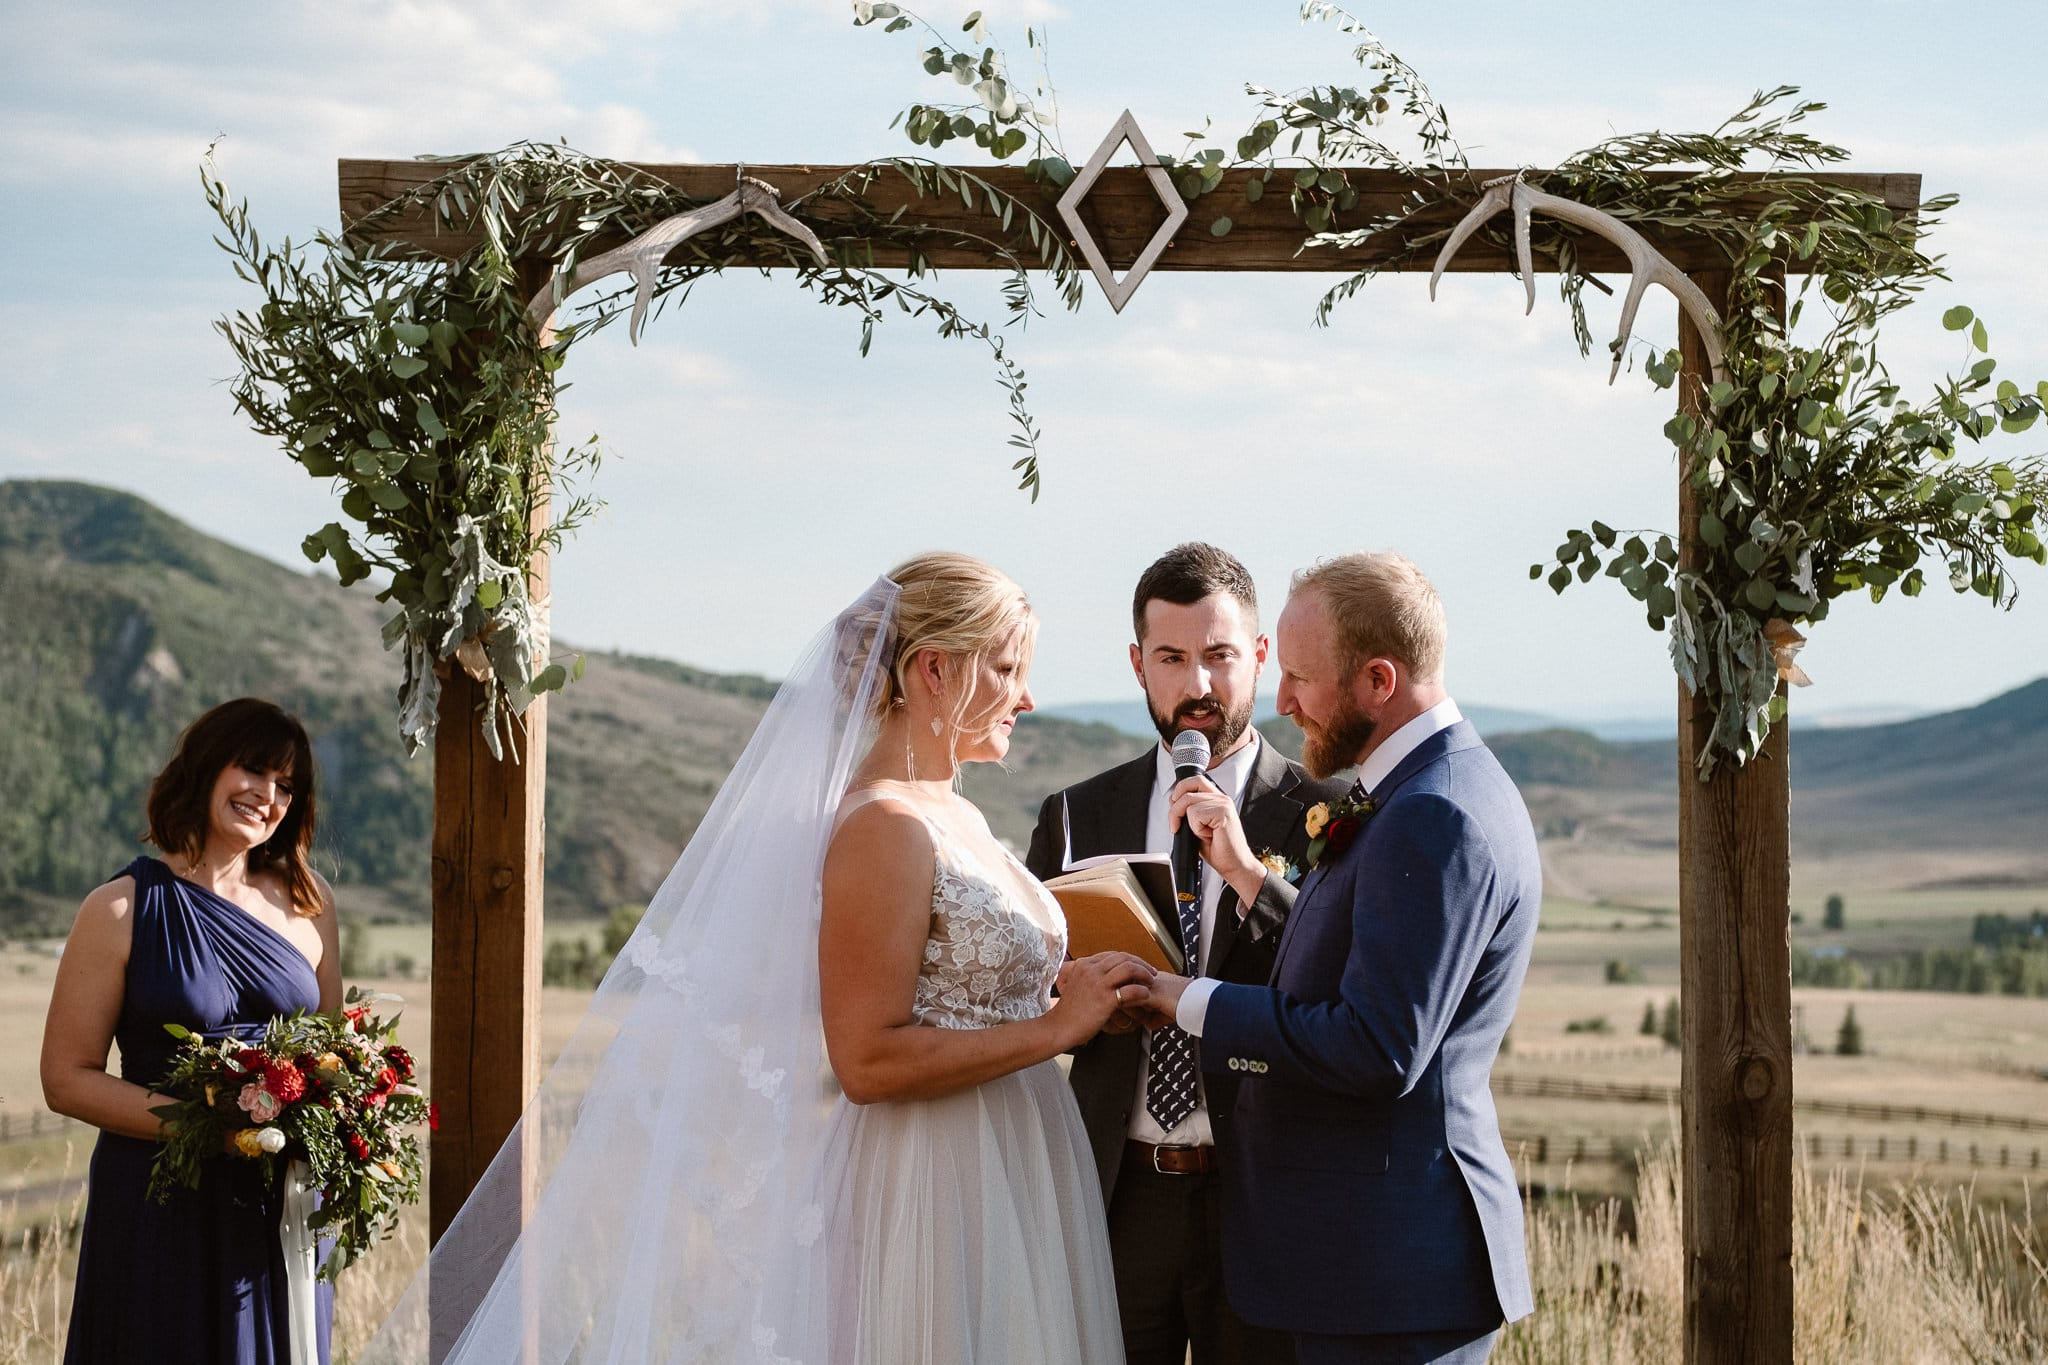 Steamboat Springs wedding photographer, La Joya Dulce wedding, Colorado ranch wedding venues, outdoor wedding ceremony, Colorado wedding, Rocky Mountain wedding, ranch wedding